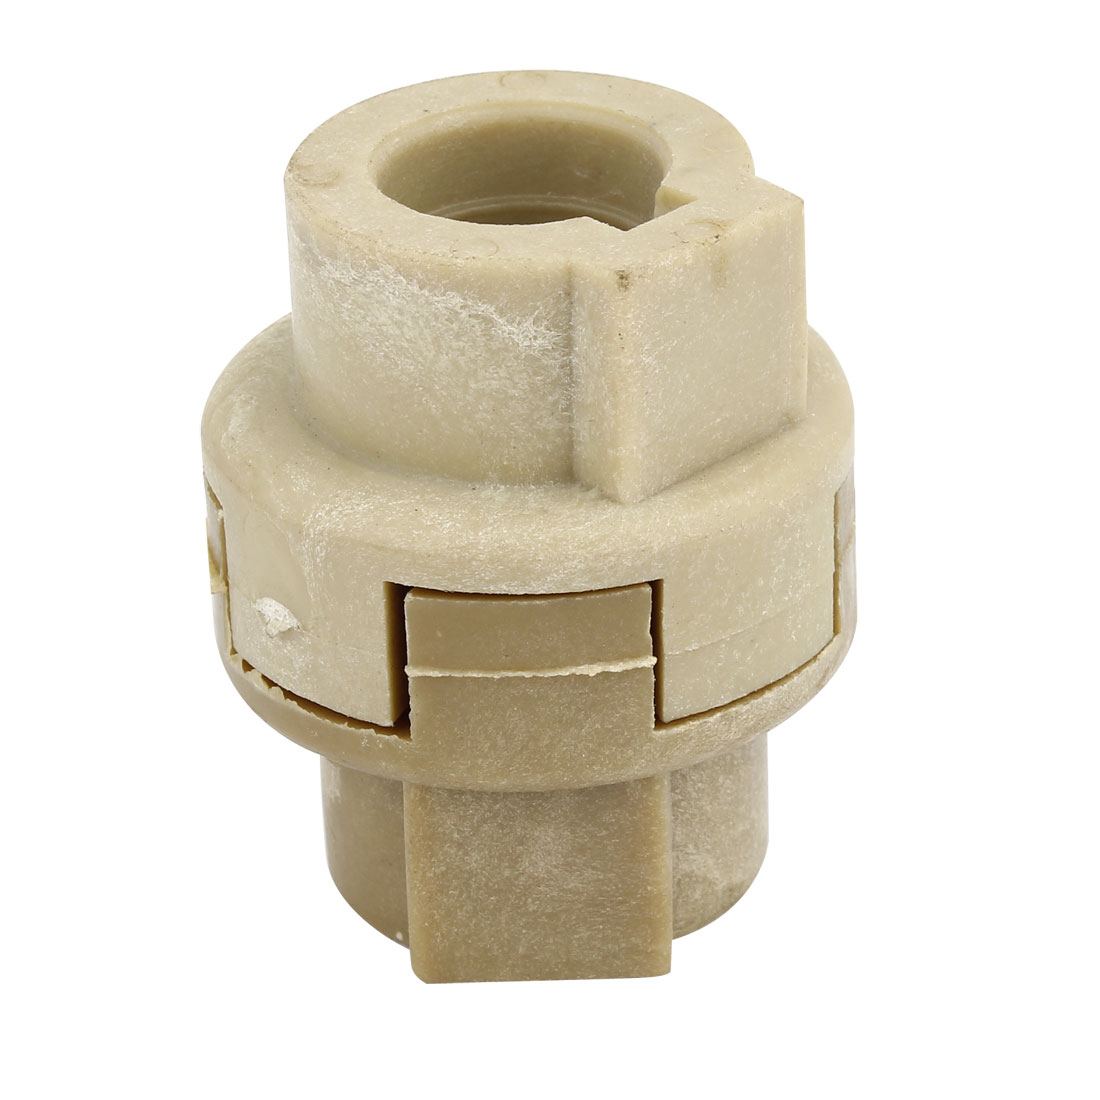 20mm Bore Shaft Khaki Plastic Jaw Coupling Coupler Hub w Damper